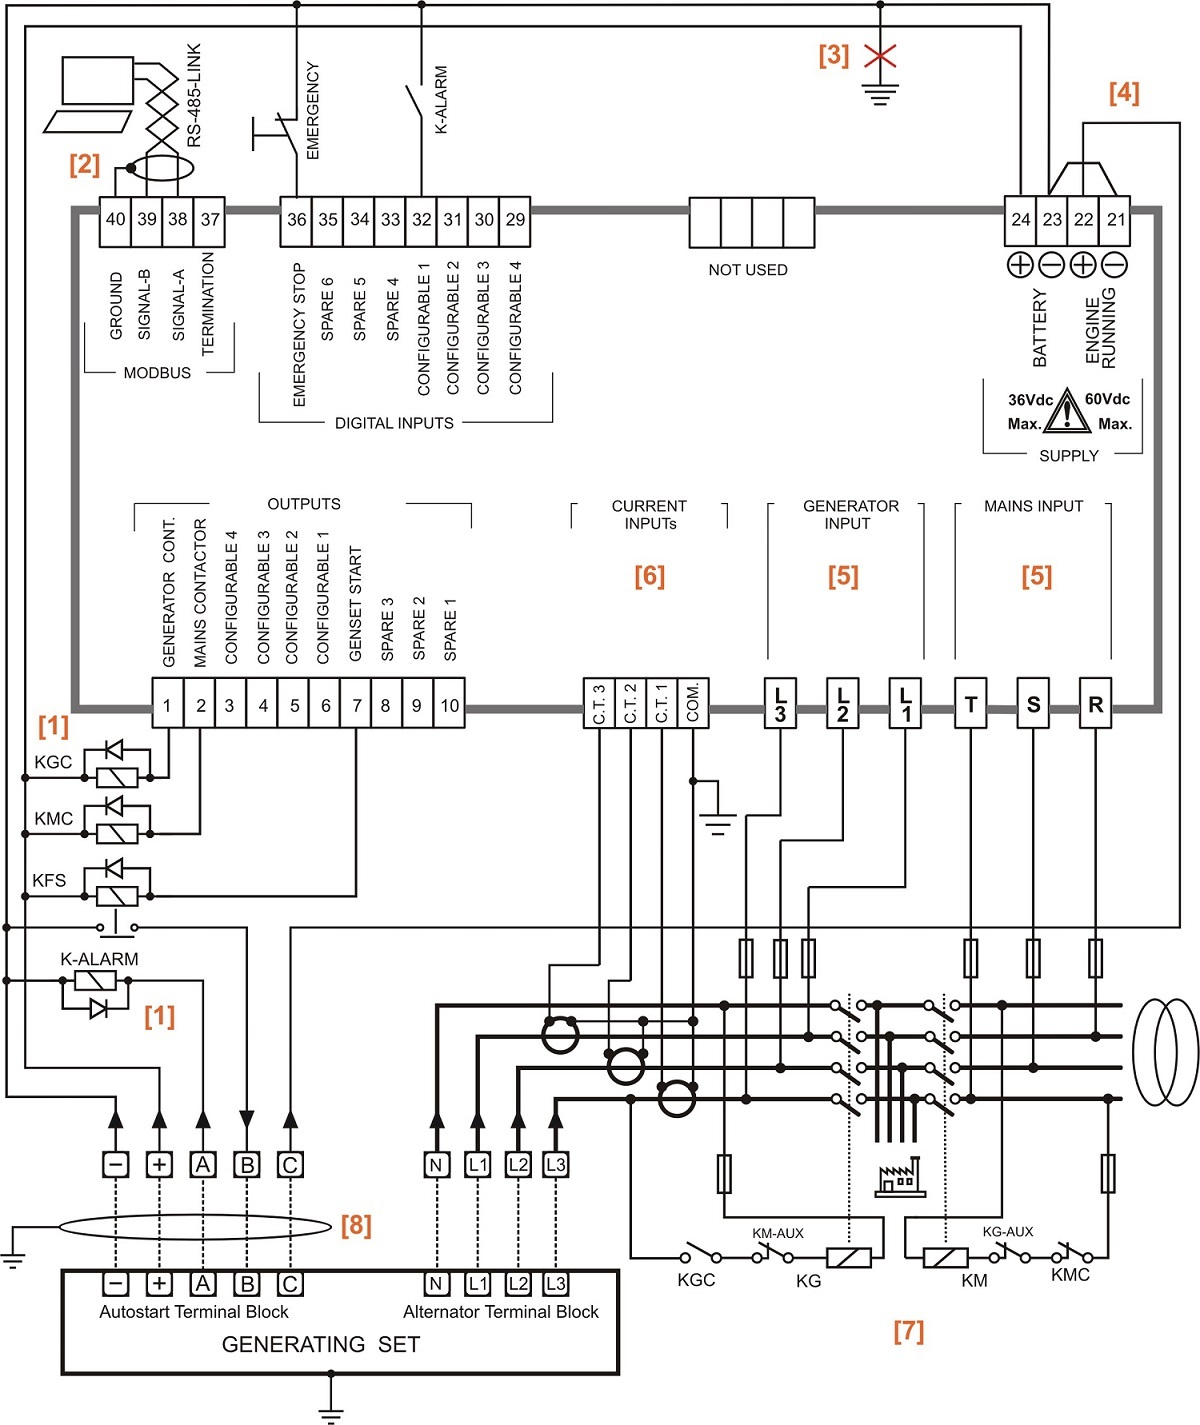 cummins transfer switch wiring diagram Download-auto transfer switch wiring diagram jerrysmasterkeyforyouand me rh jerrysmasterkeyforyouand me 7-m